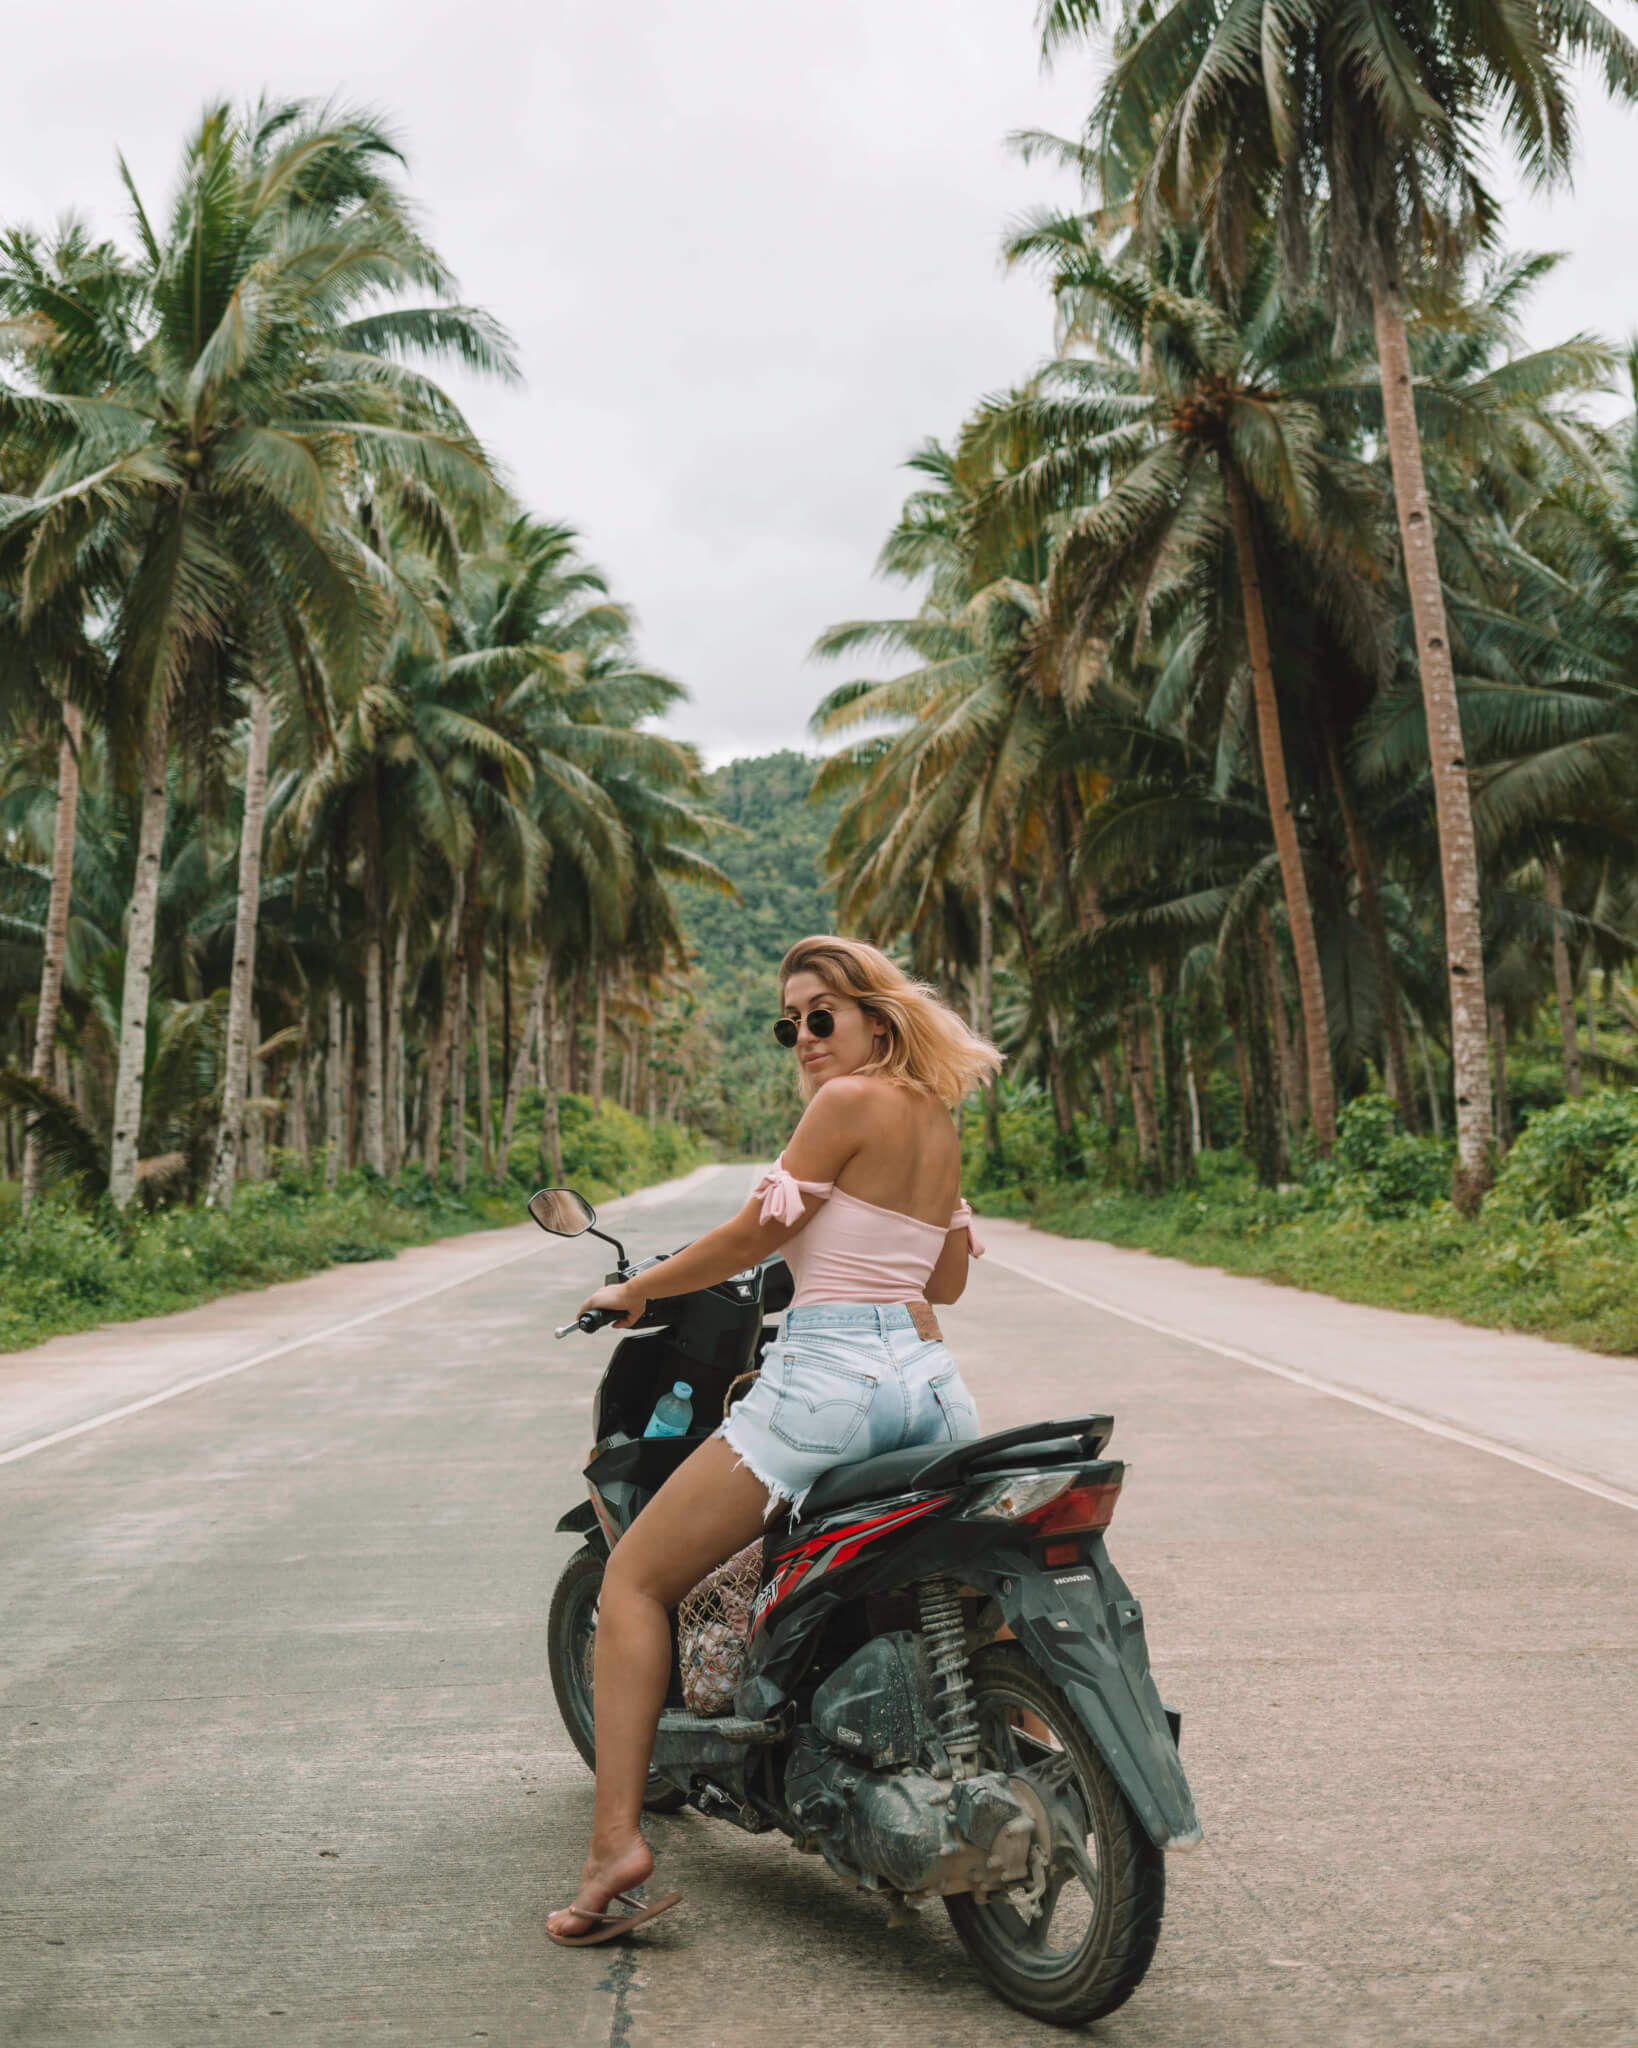 Scooter riding In Siargao